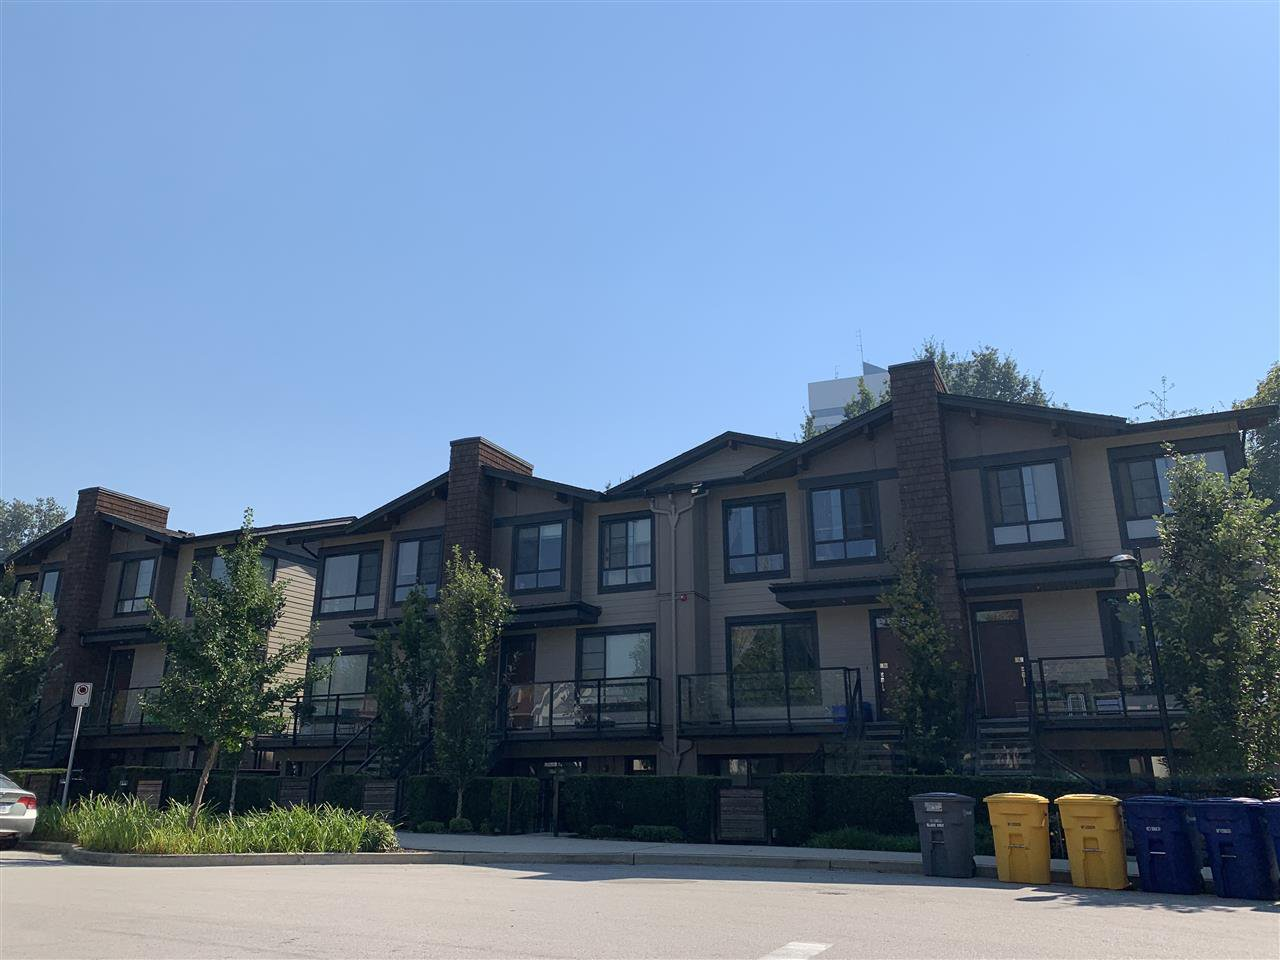 Main Photo: 22 3728 THURSTON Street in Burnaby: Central Park BS Townhouse for sale (Burnaby South)  : MLS®# R2497891